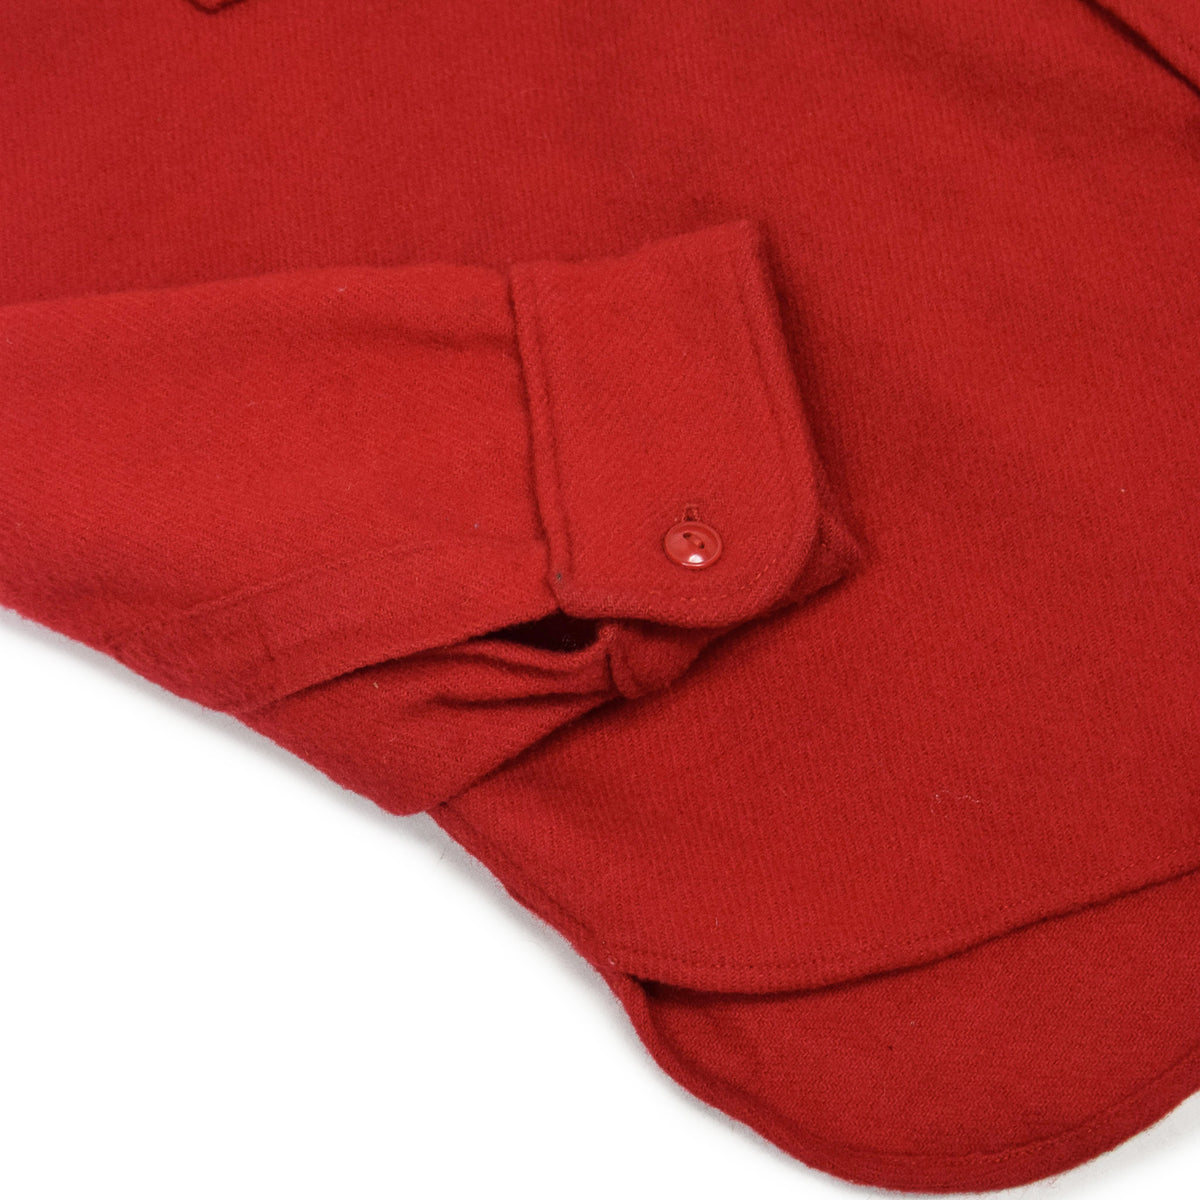 Vintage 70s Woolrich Red Long Sleeve Wool Shirt Made in USA L cuff